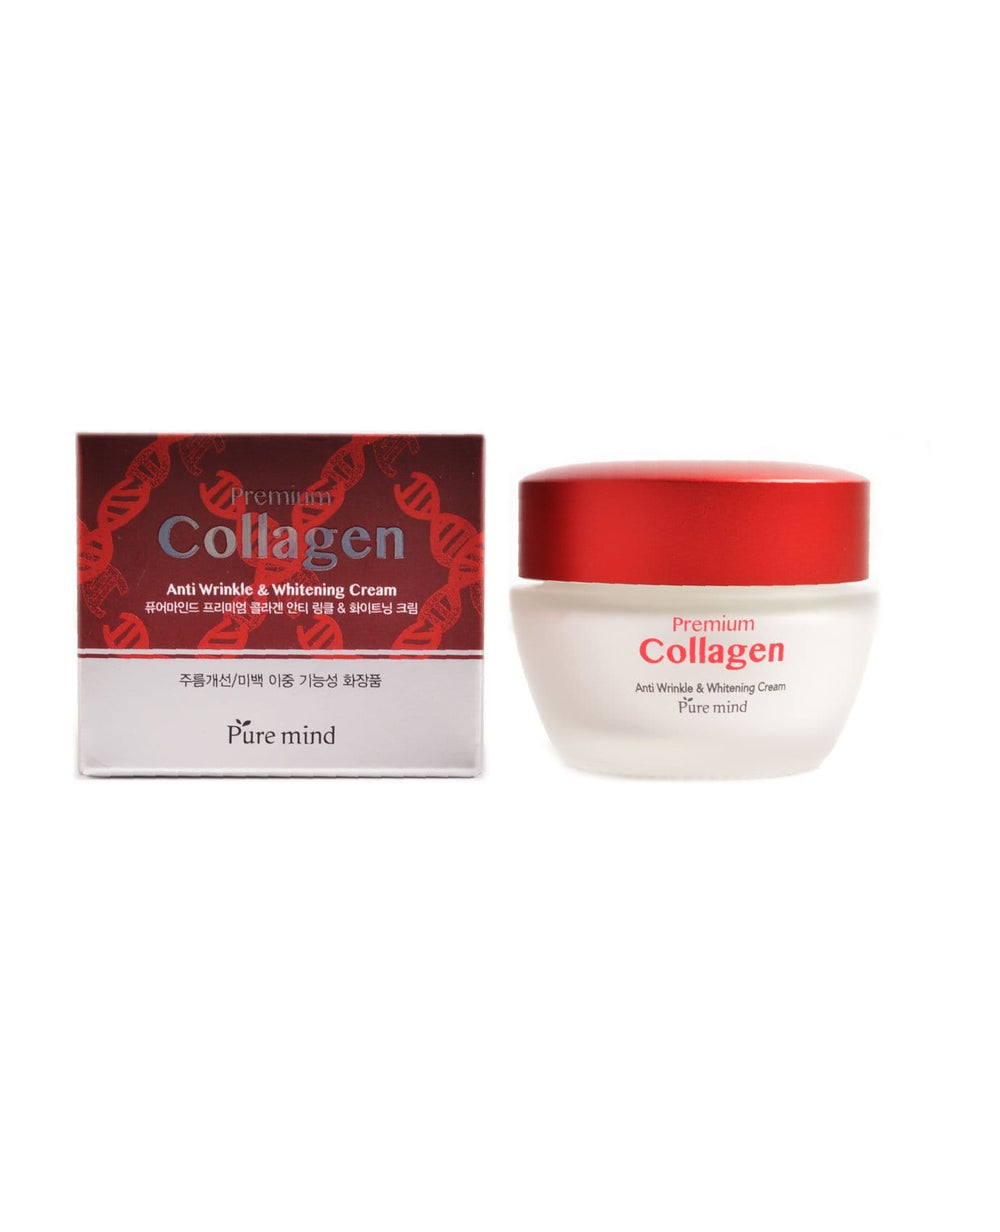 Pure Mind Premium Collagen Anti Wrinkle & Whitening Cream